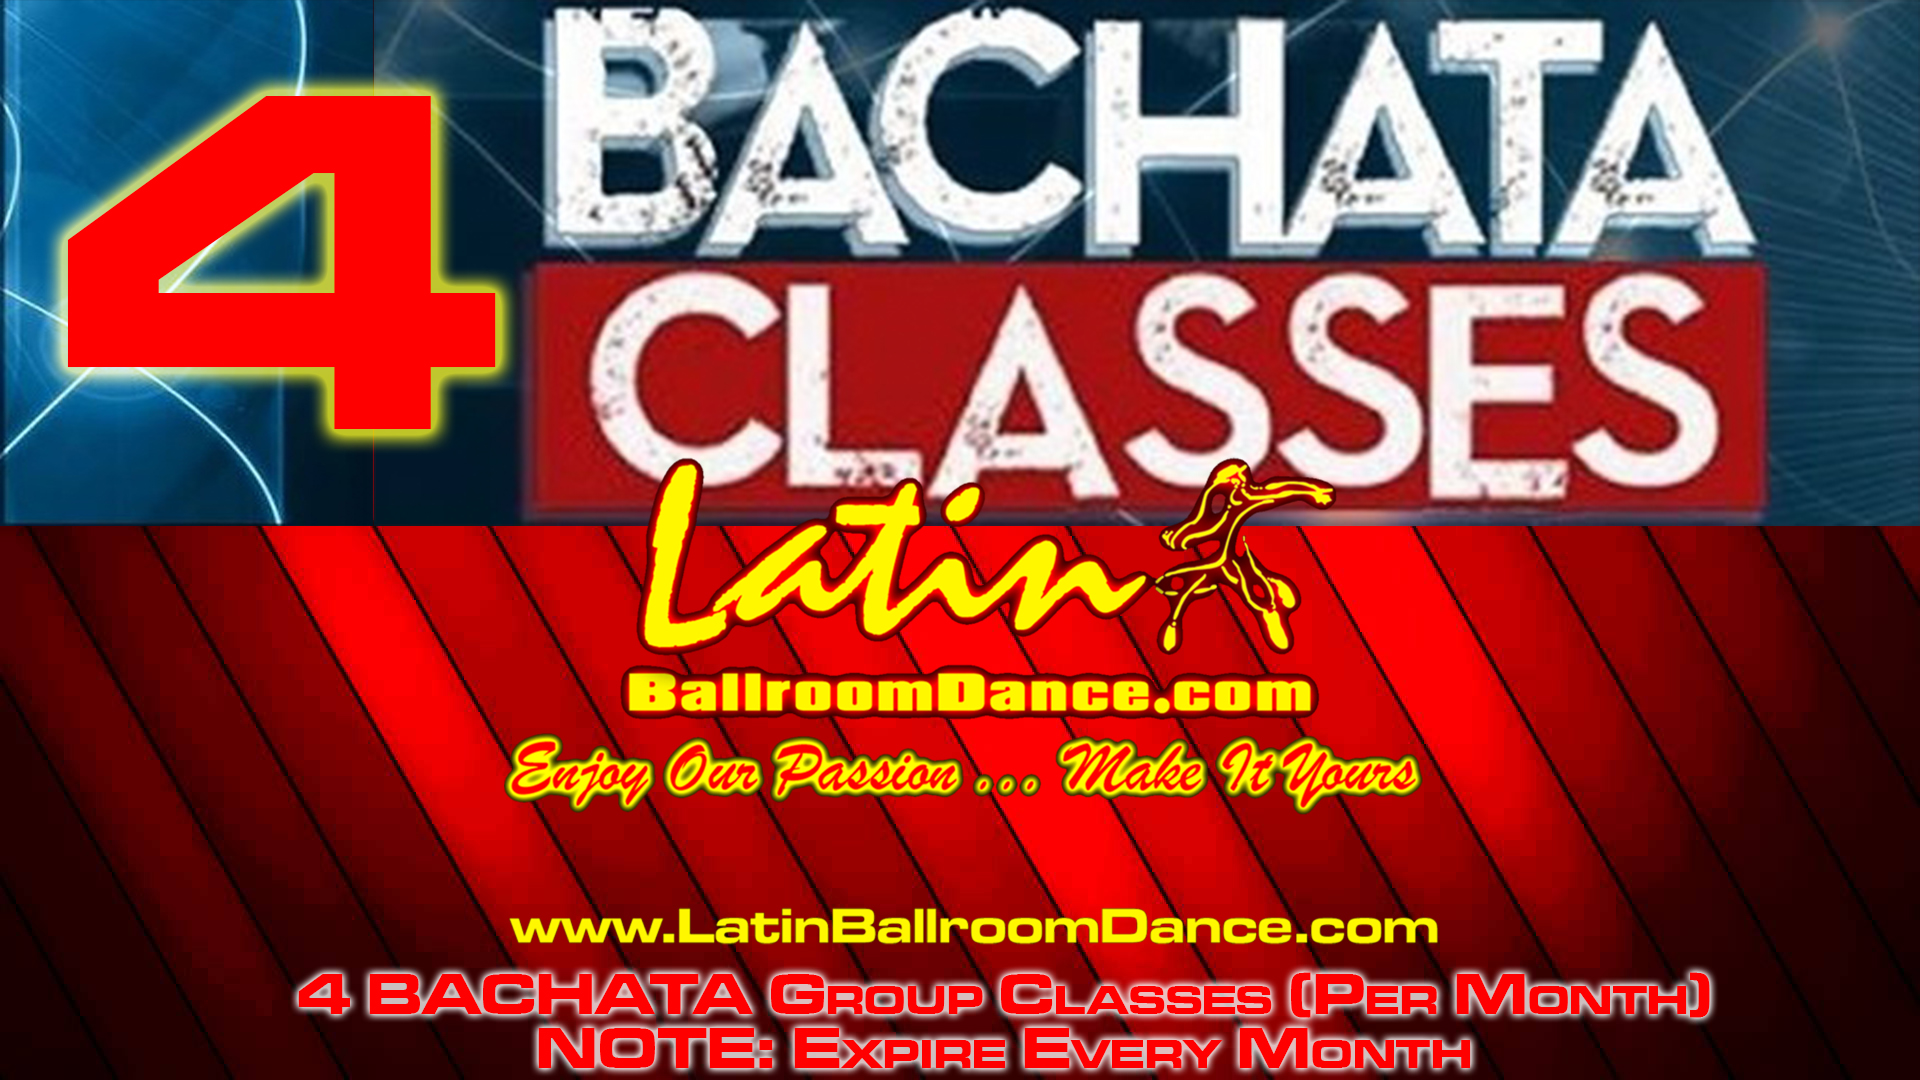 4 CLASSES FOR JUST $60